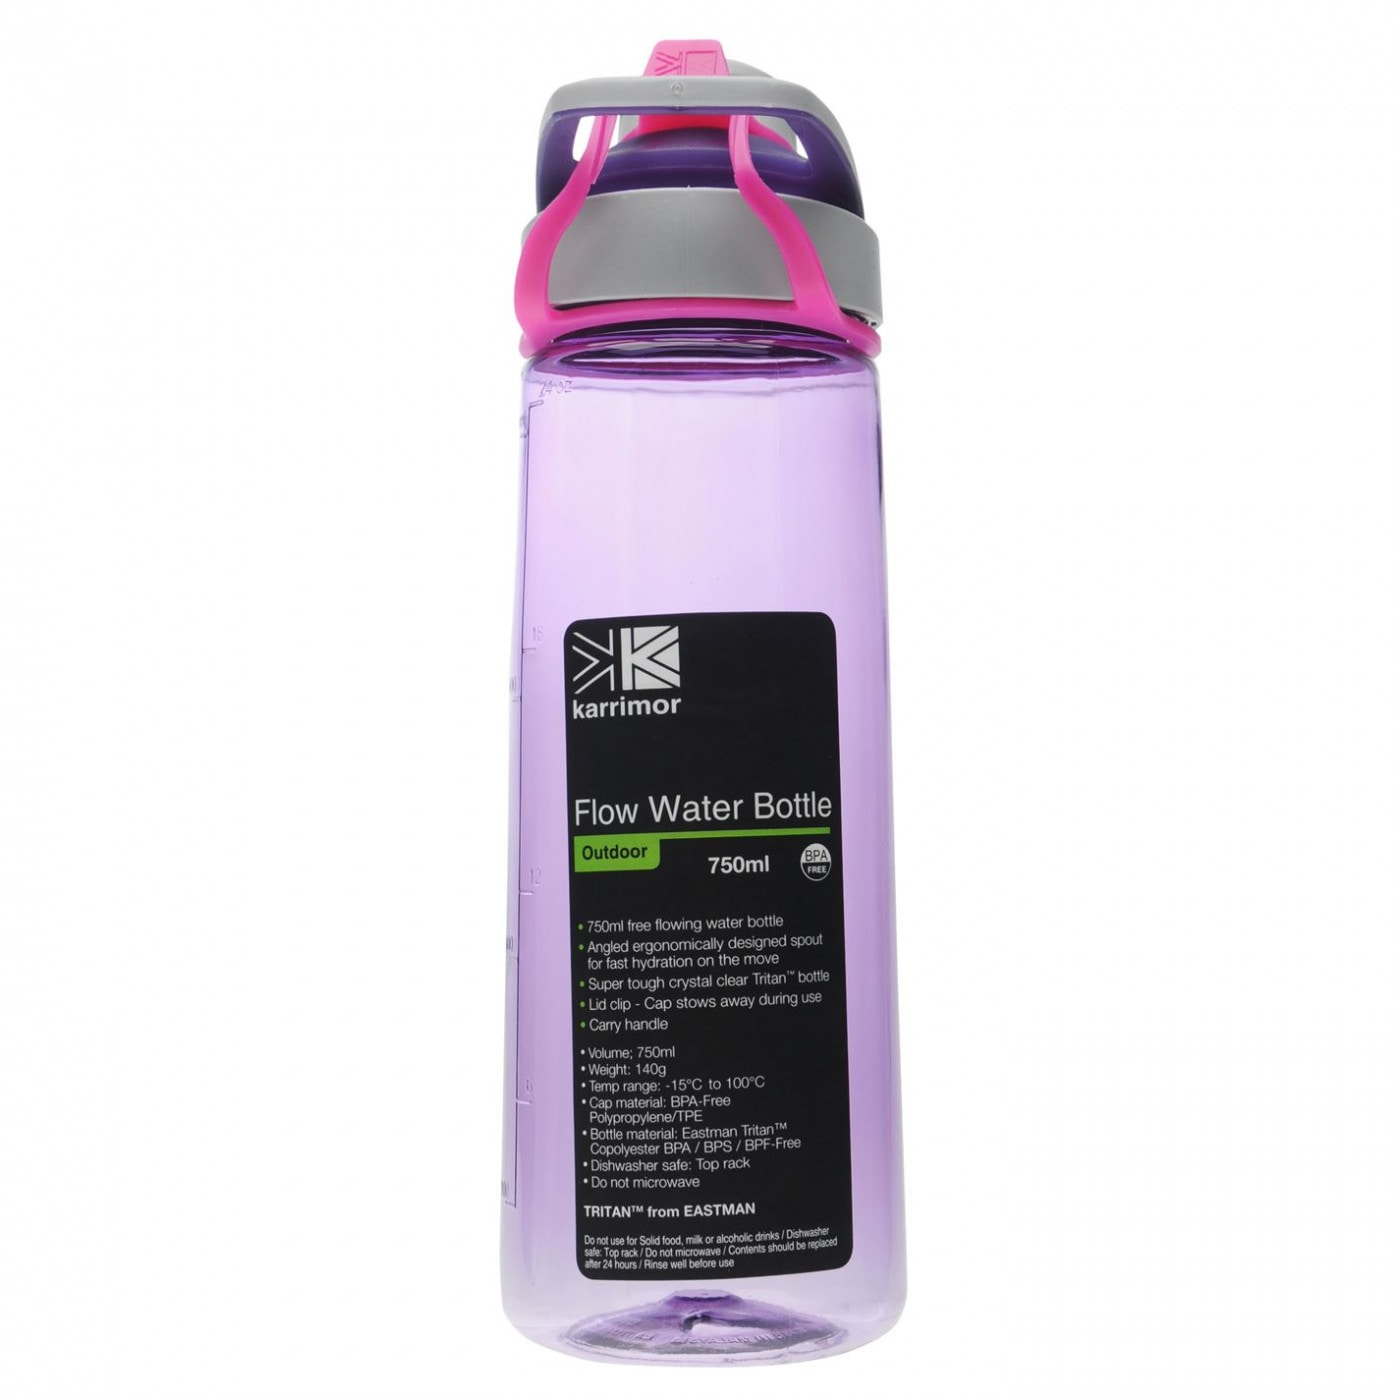 Karrimor 750ml Flow Water Bottle